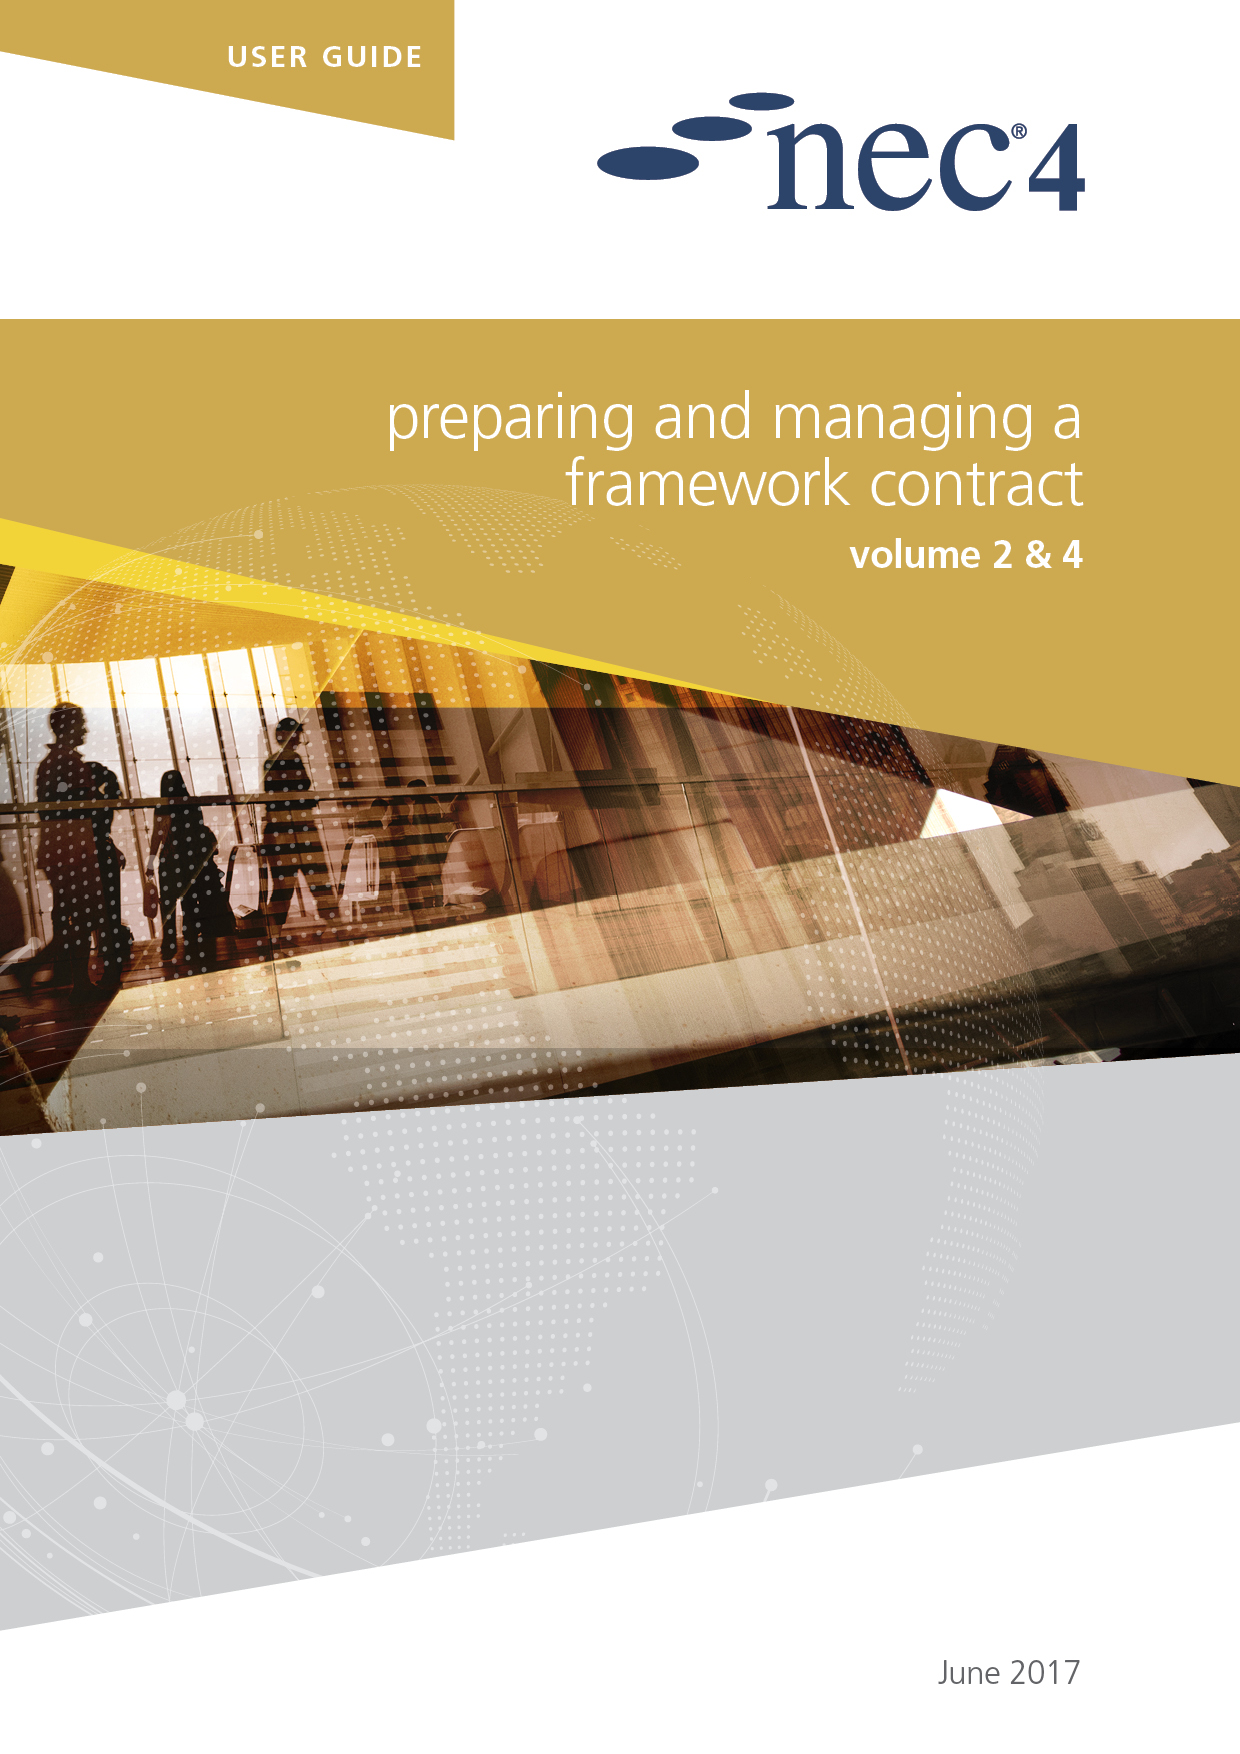 NEC4: Preparing and Managing a Framework Contract